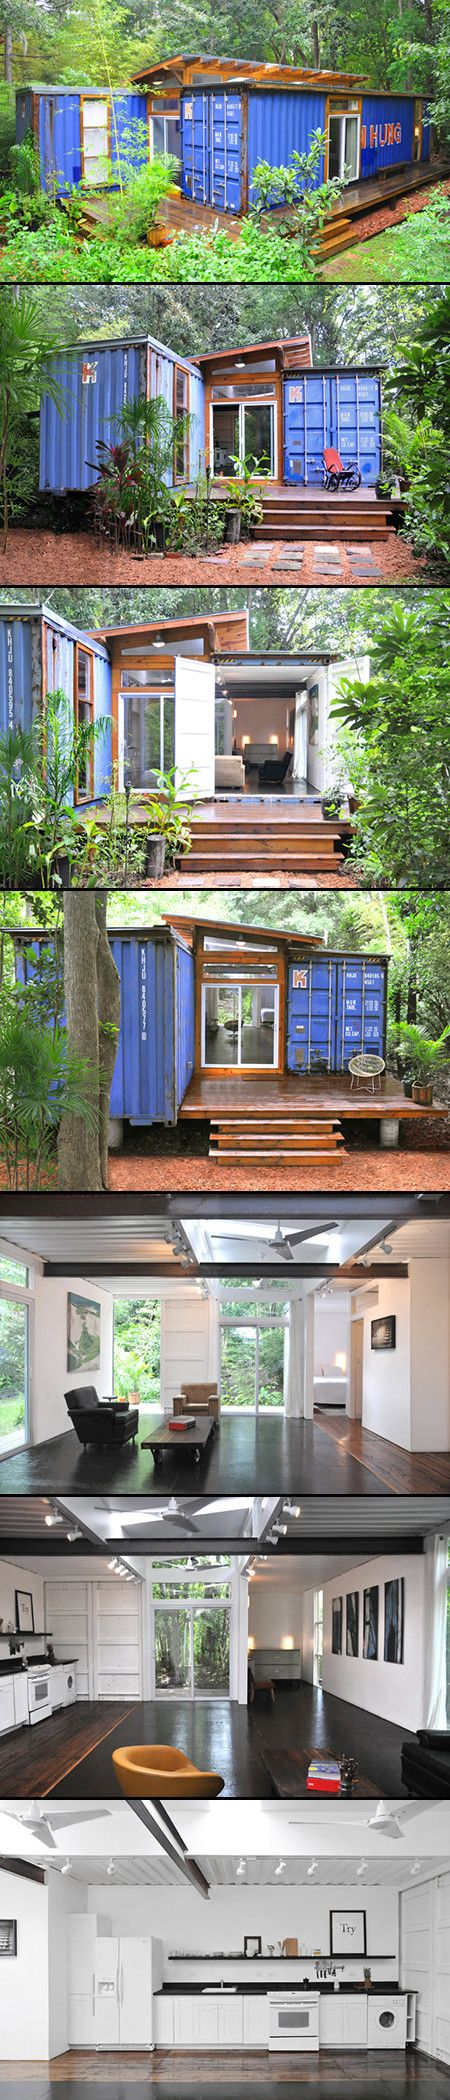 Artist and designer Julio Garcia recently built his own recycled shipping container home in Savannah, Georgia. The printmaker took two 40 ft containers and set them apart with a shed roof and clerestory windows that fill the modest space with loads of daylight. Wood and a lot of bright interior furnishings make the one-bedroom home a perfect retreat for an artist.  Read more: Artist Julio Garcia Builds a Light-Filled Shipping Container Home in Savannah | Inhabitat - Sustainable Design…